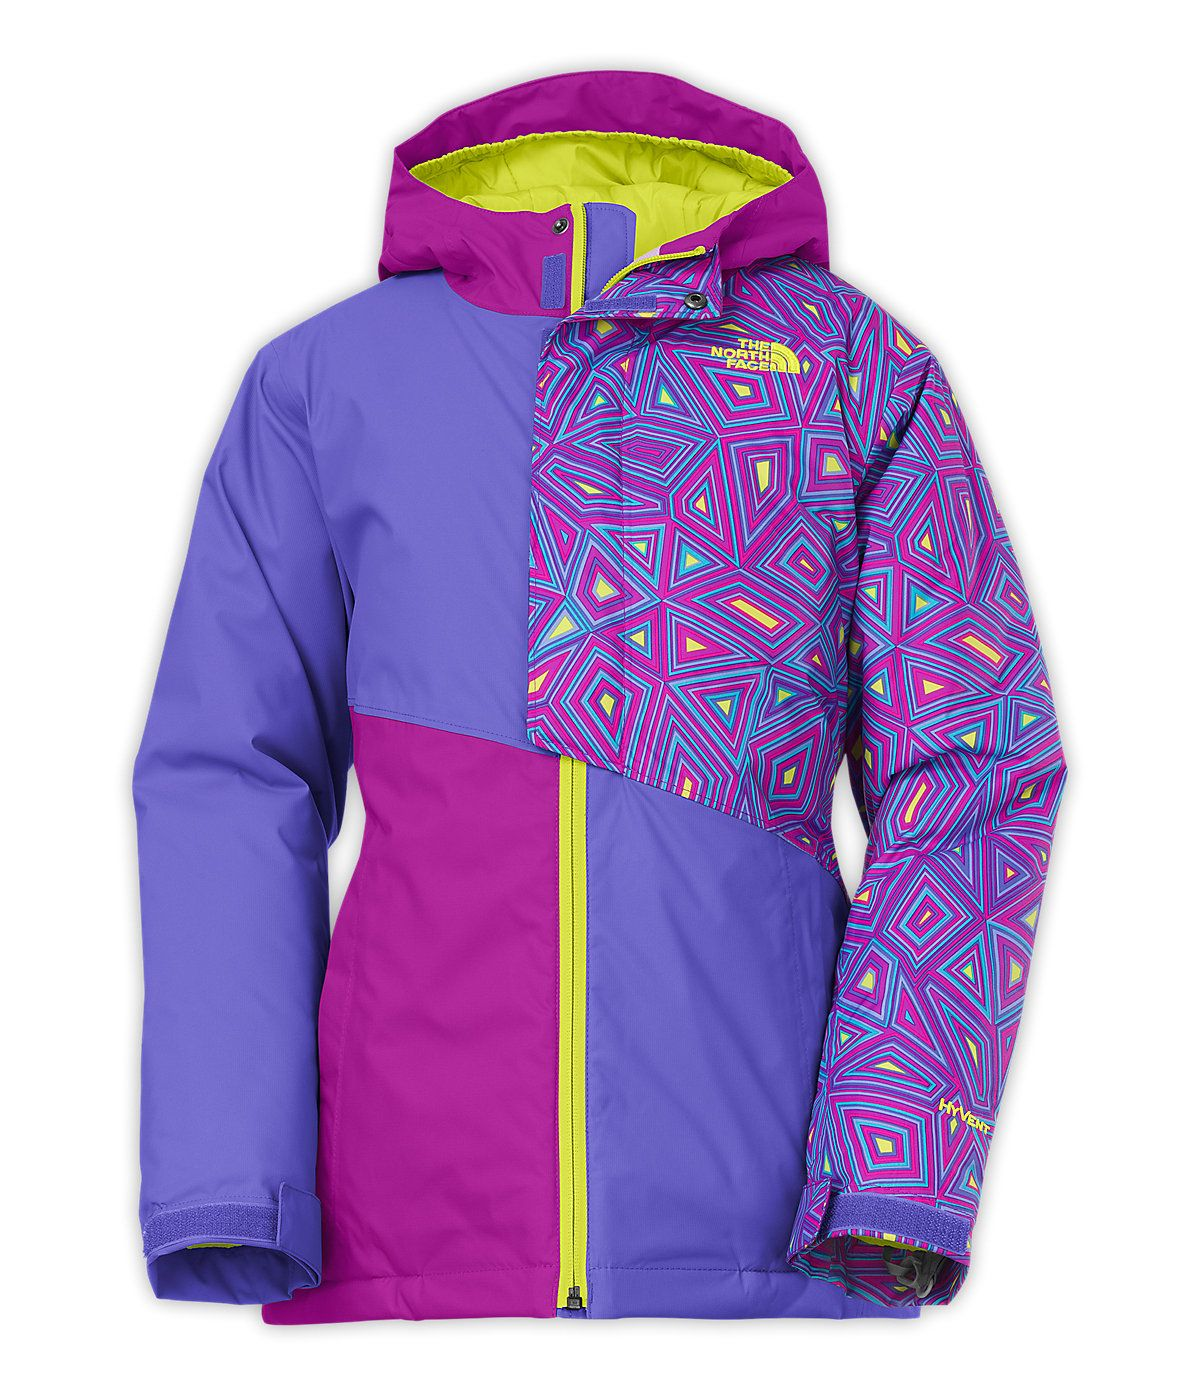 Girls Insulated Casie Jacket The North Face Jackets Girls Jacket Insulated Jackets [ 1396 x 1200 Pixel ]